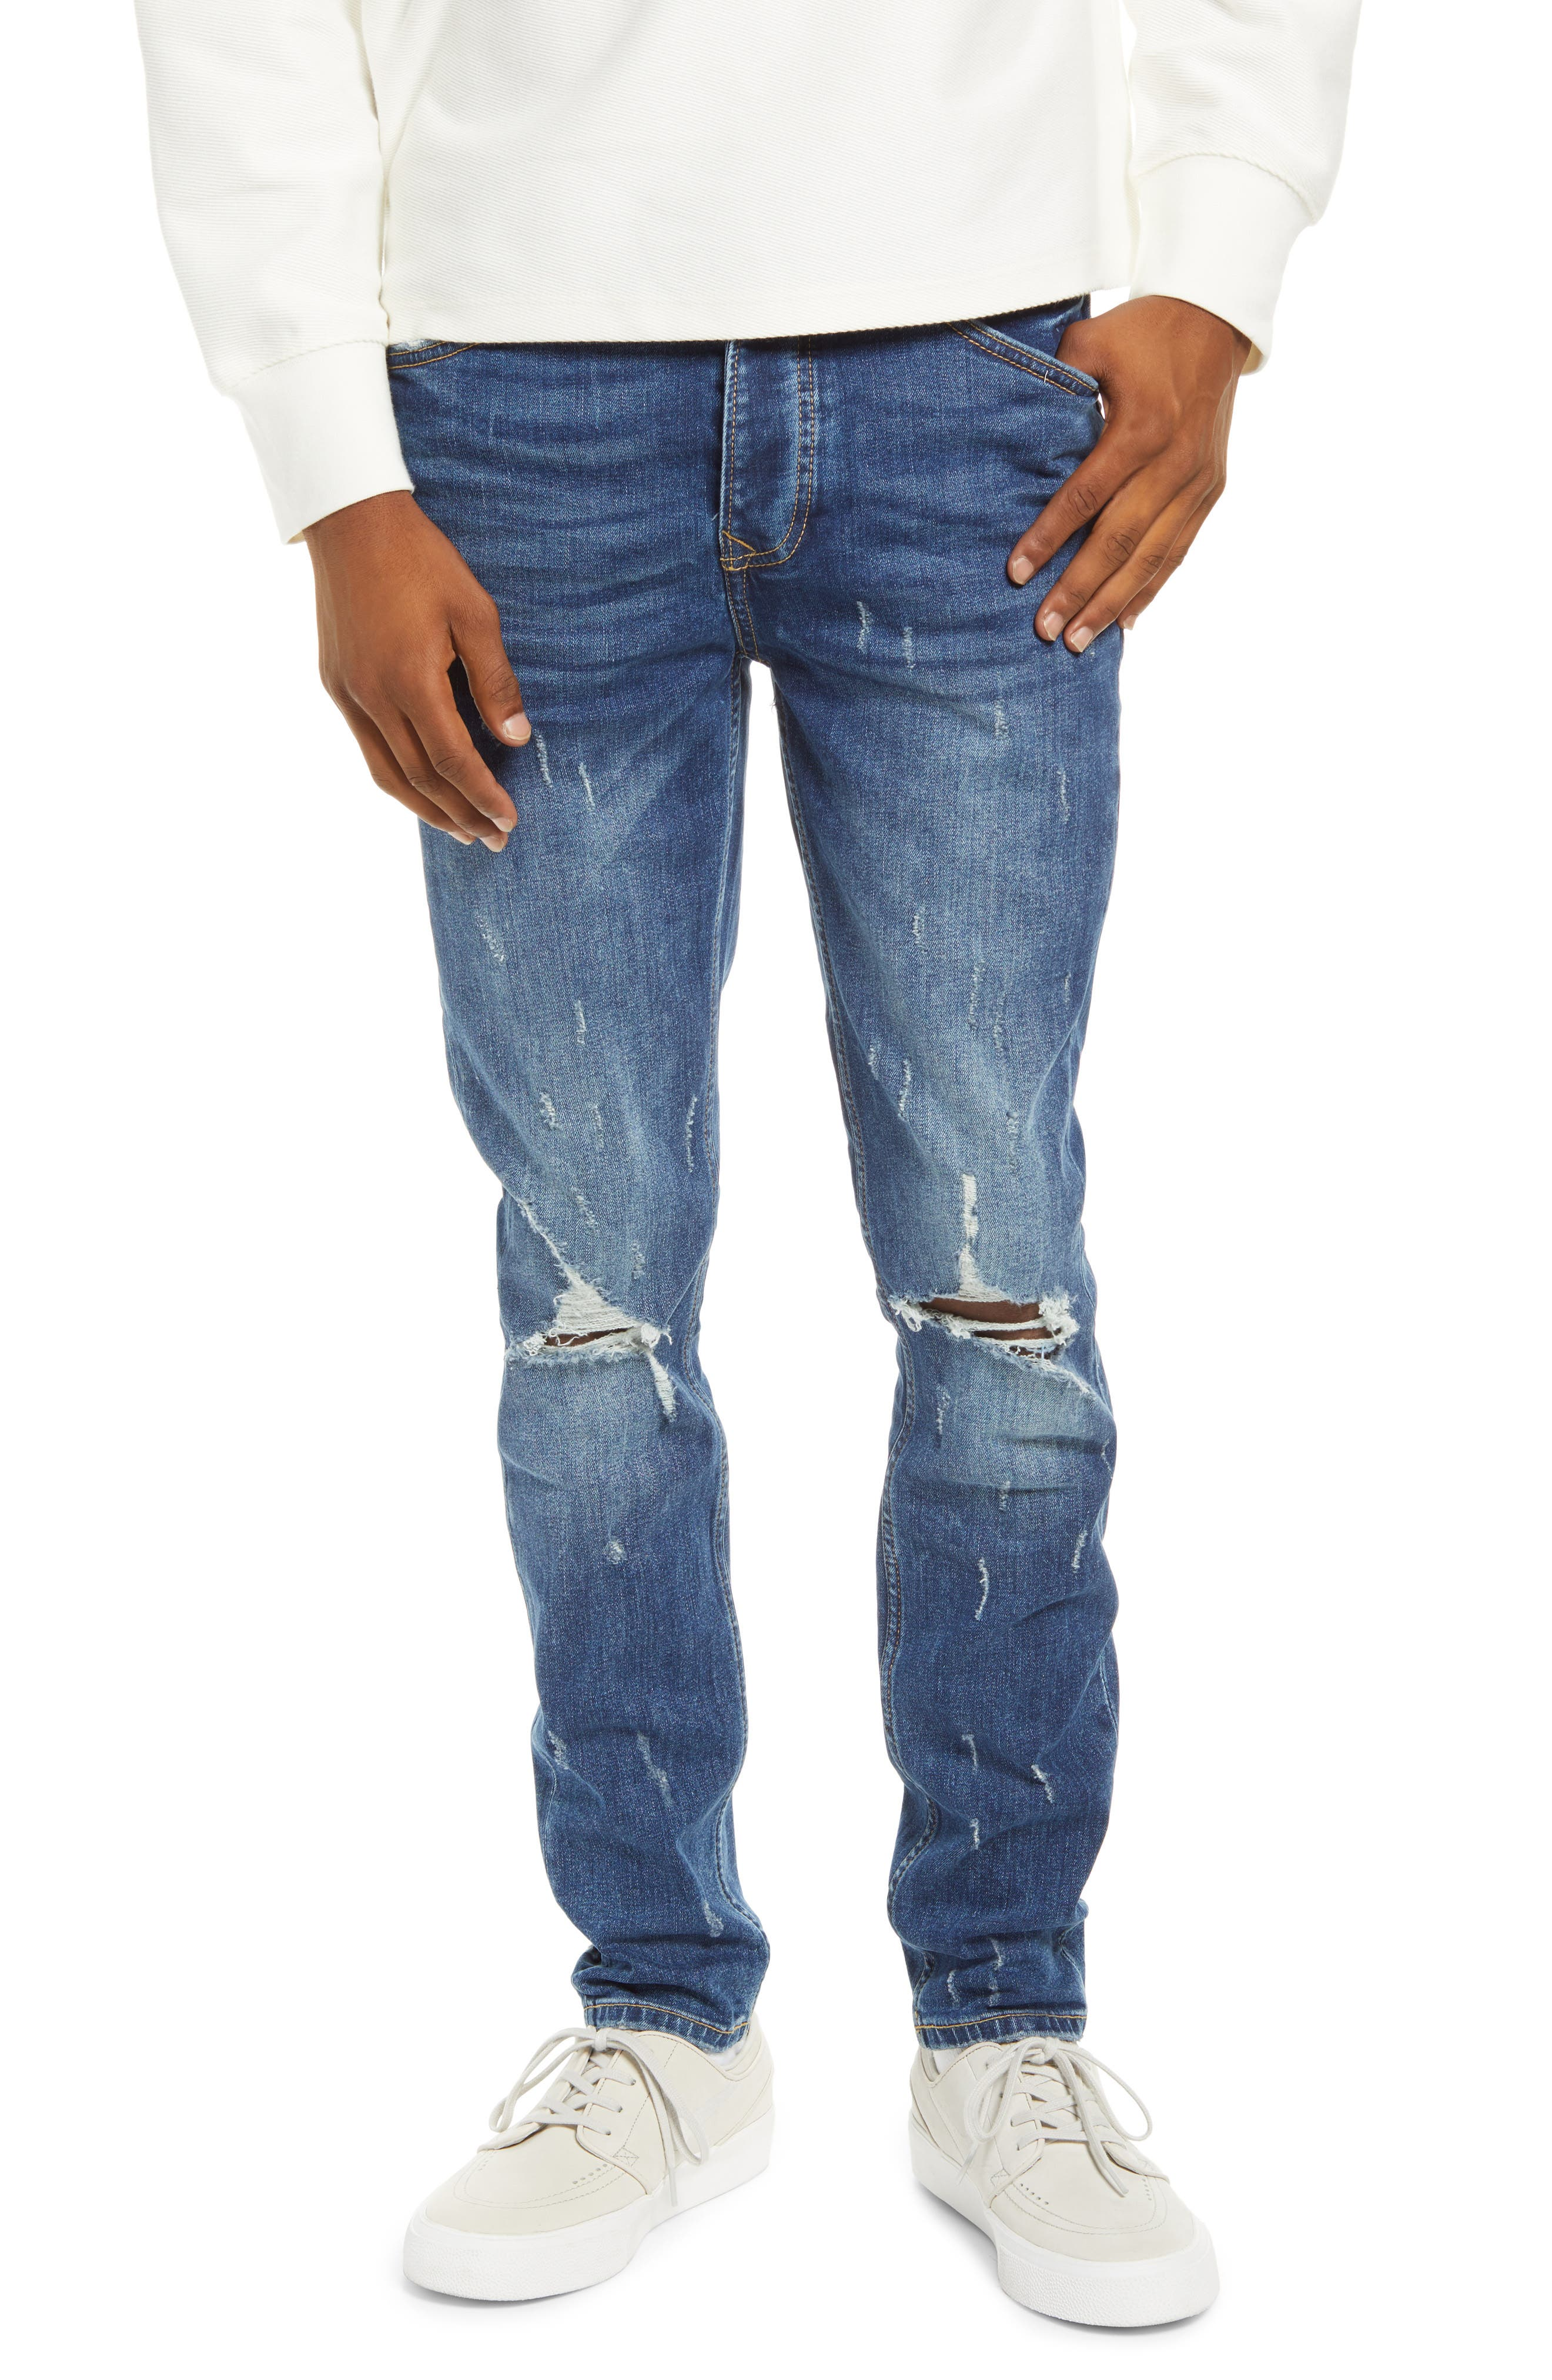 Edgy destruction brings chic appeal to these faded jeans that are soon to be an everyday favorite. Style Name: Topman Damage Ripped Blowout Jeans. Style Number: 6092334. Available in stores.